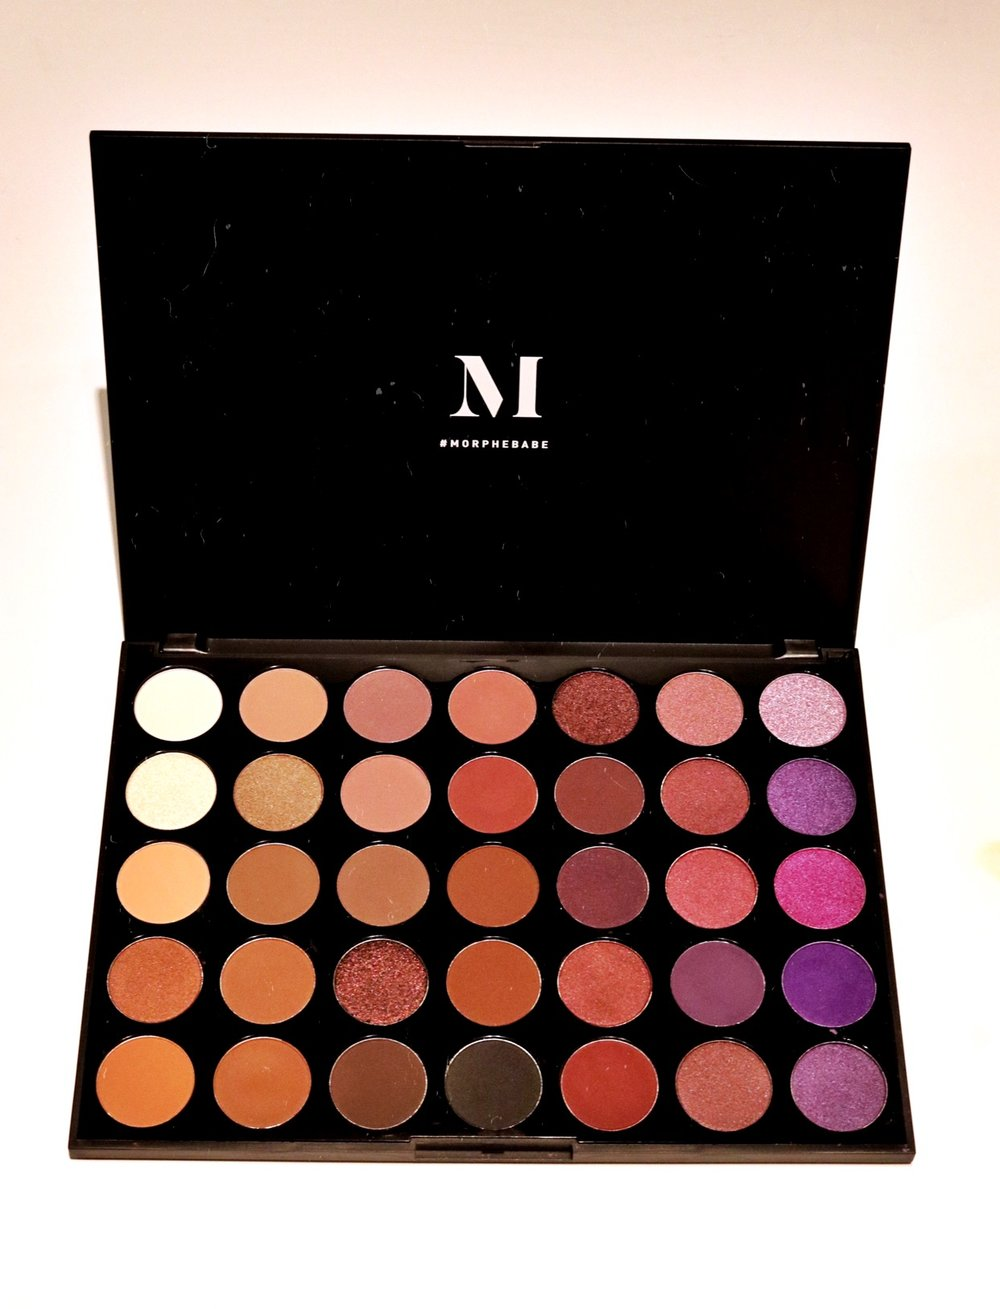 MORPHE 35P - 35 COLOR PLUM EYESHADOW PALETTE - TEXTURE: MATTEPIGMENTATION: 9BLENDABILITY: 10HONORABLE: CRUELTY FREE